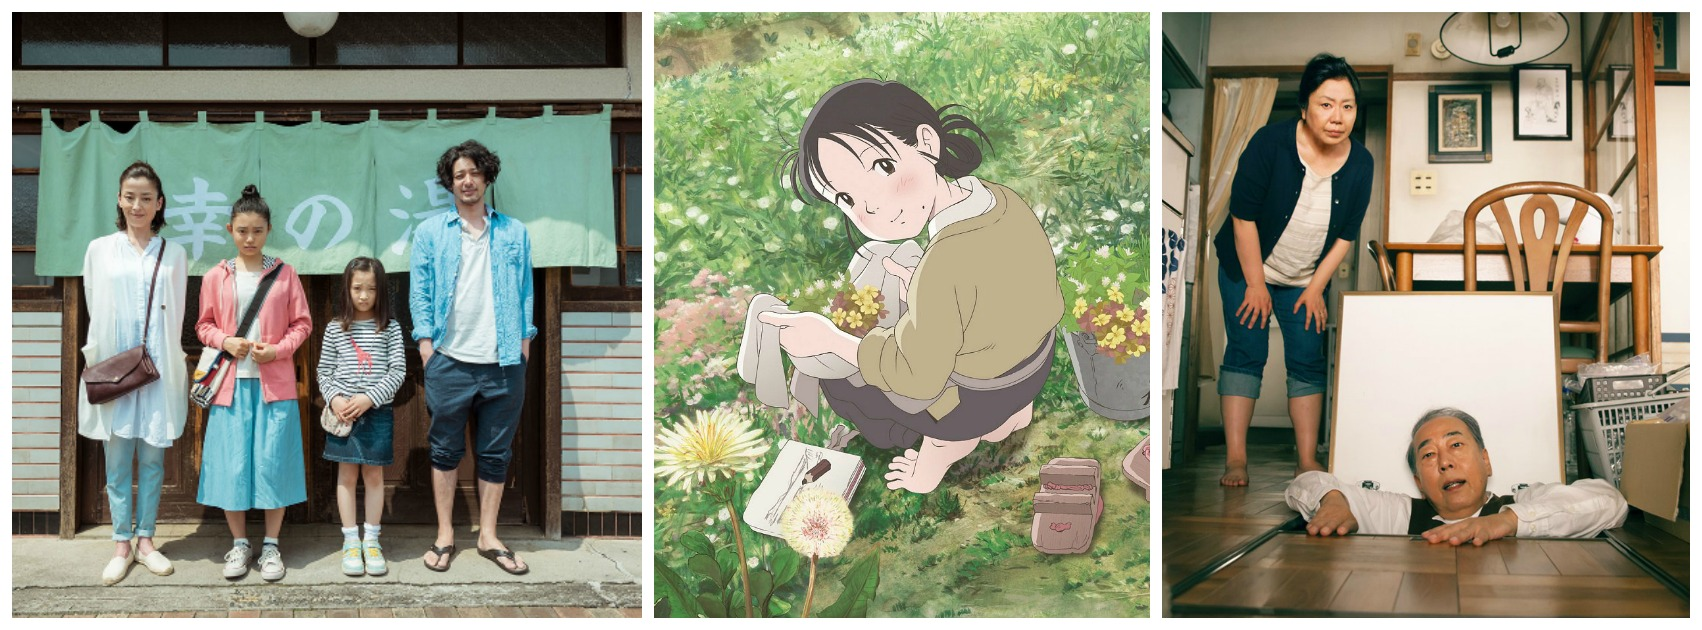 Her Love Boils Bathwater, In This Corner Of The World, Danchi (The Projects)